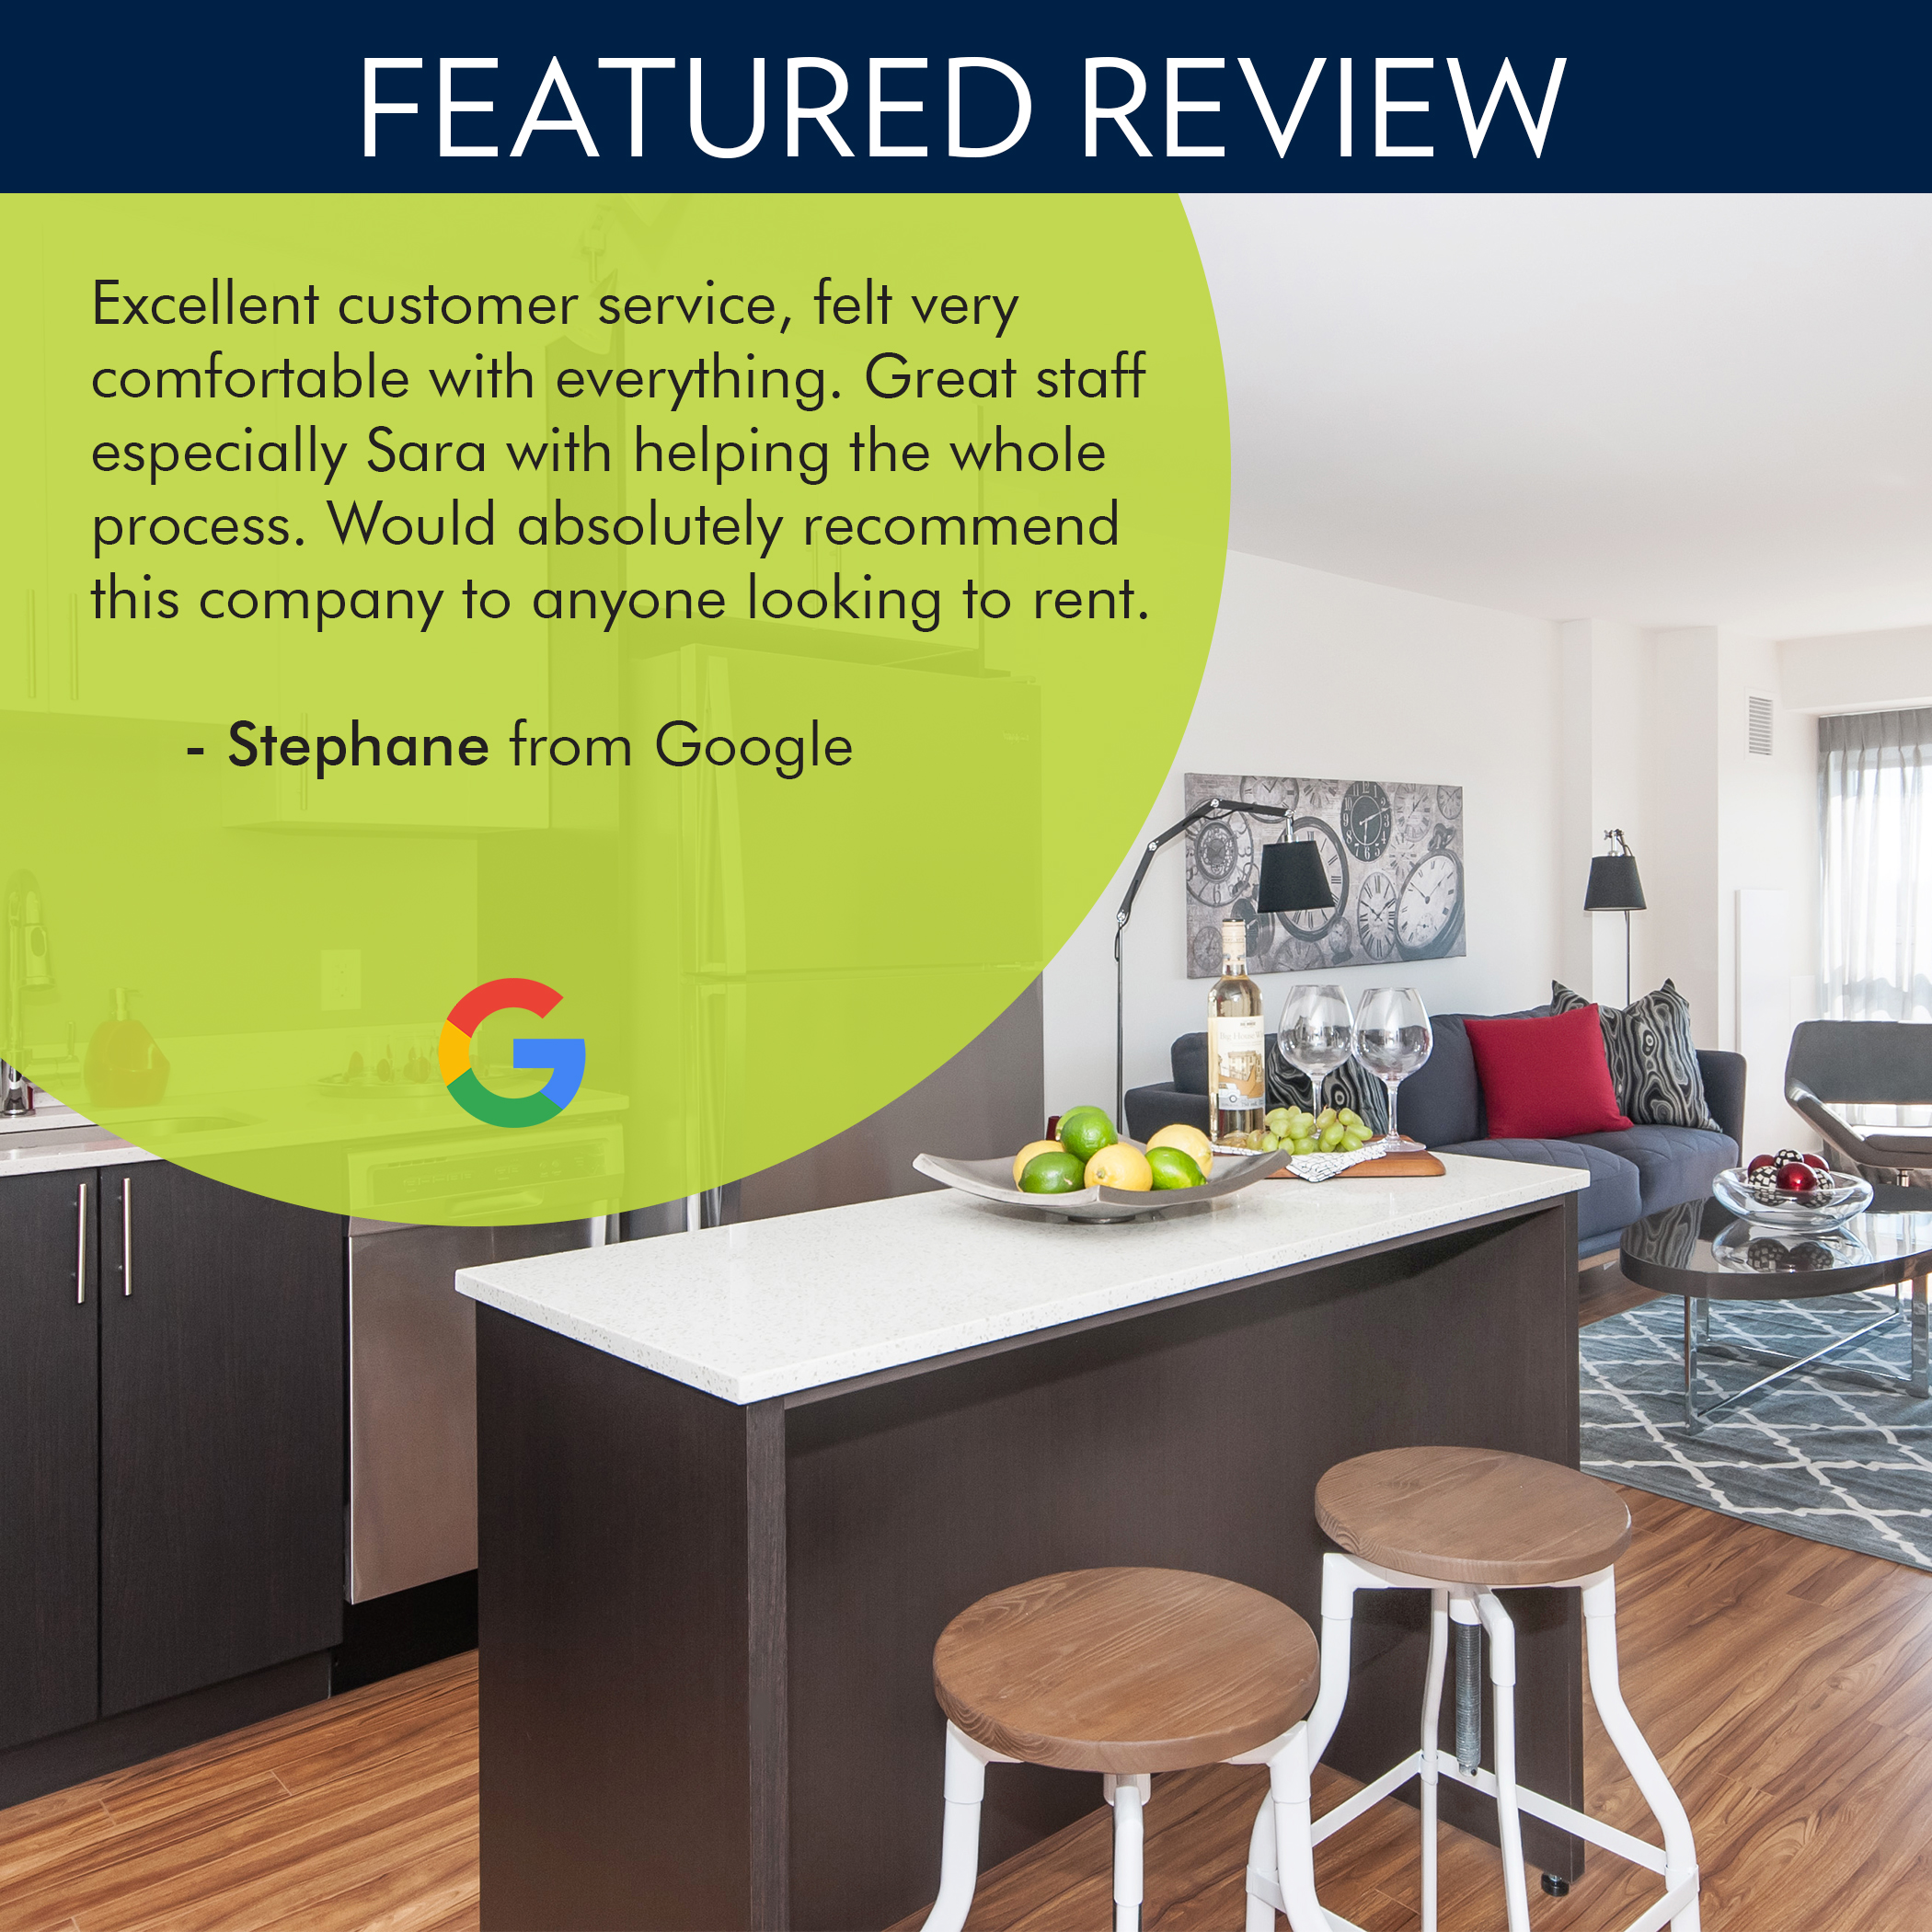 Featured Review_Apartments Riviera_January 2018